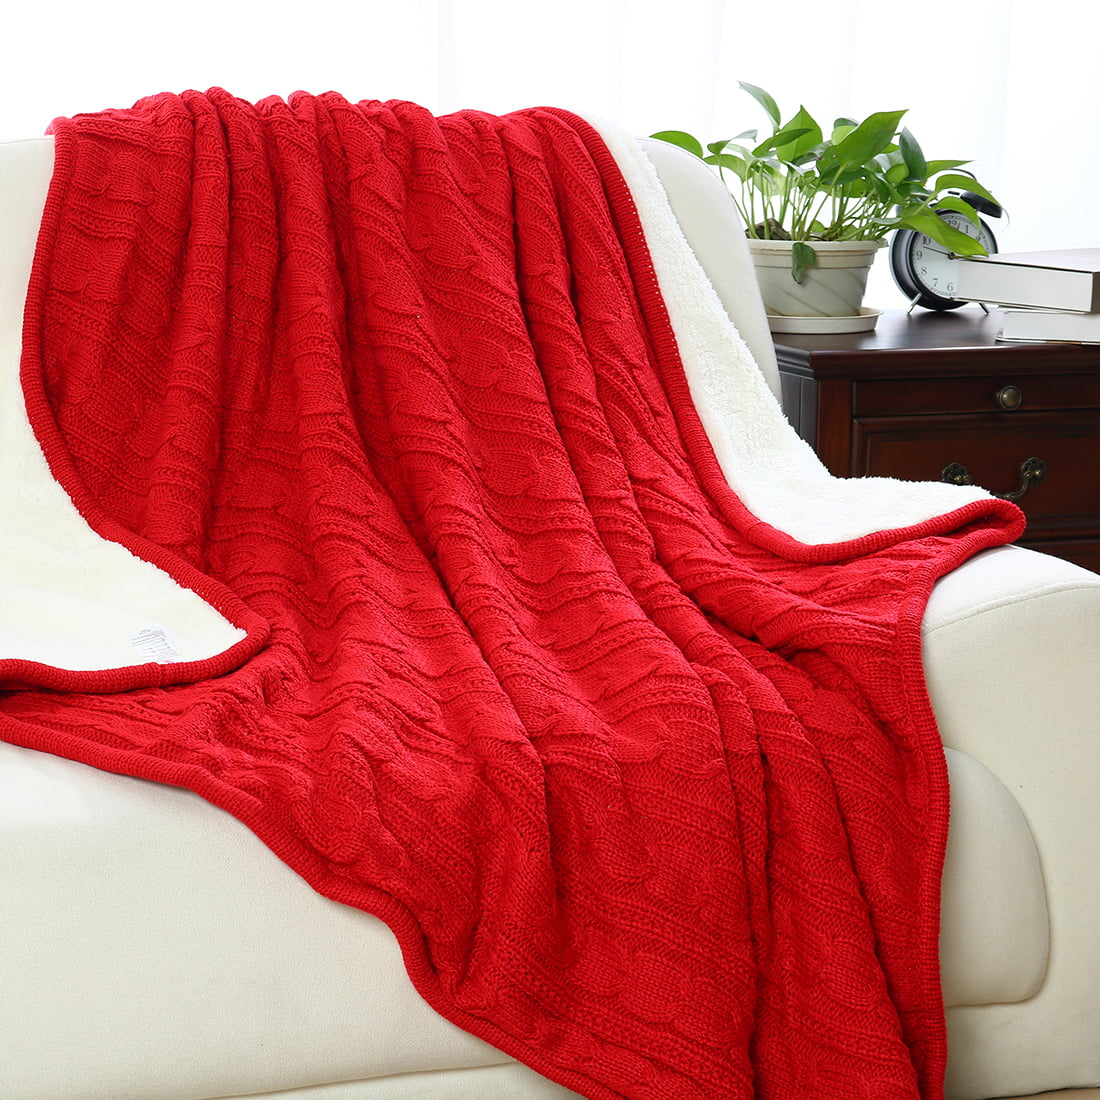 fuzzy sofa sectional ottoman cable knit reversible throw blanket with fleece for